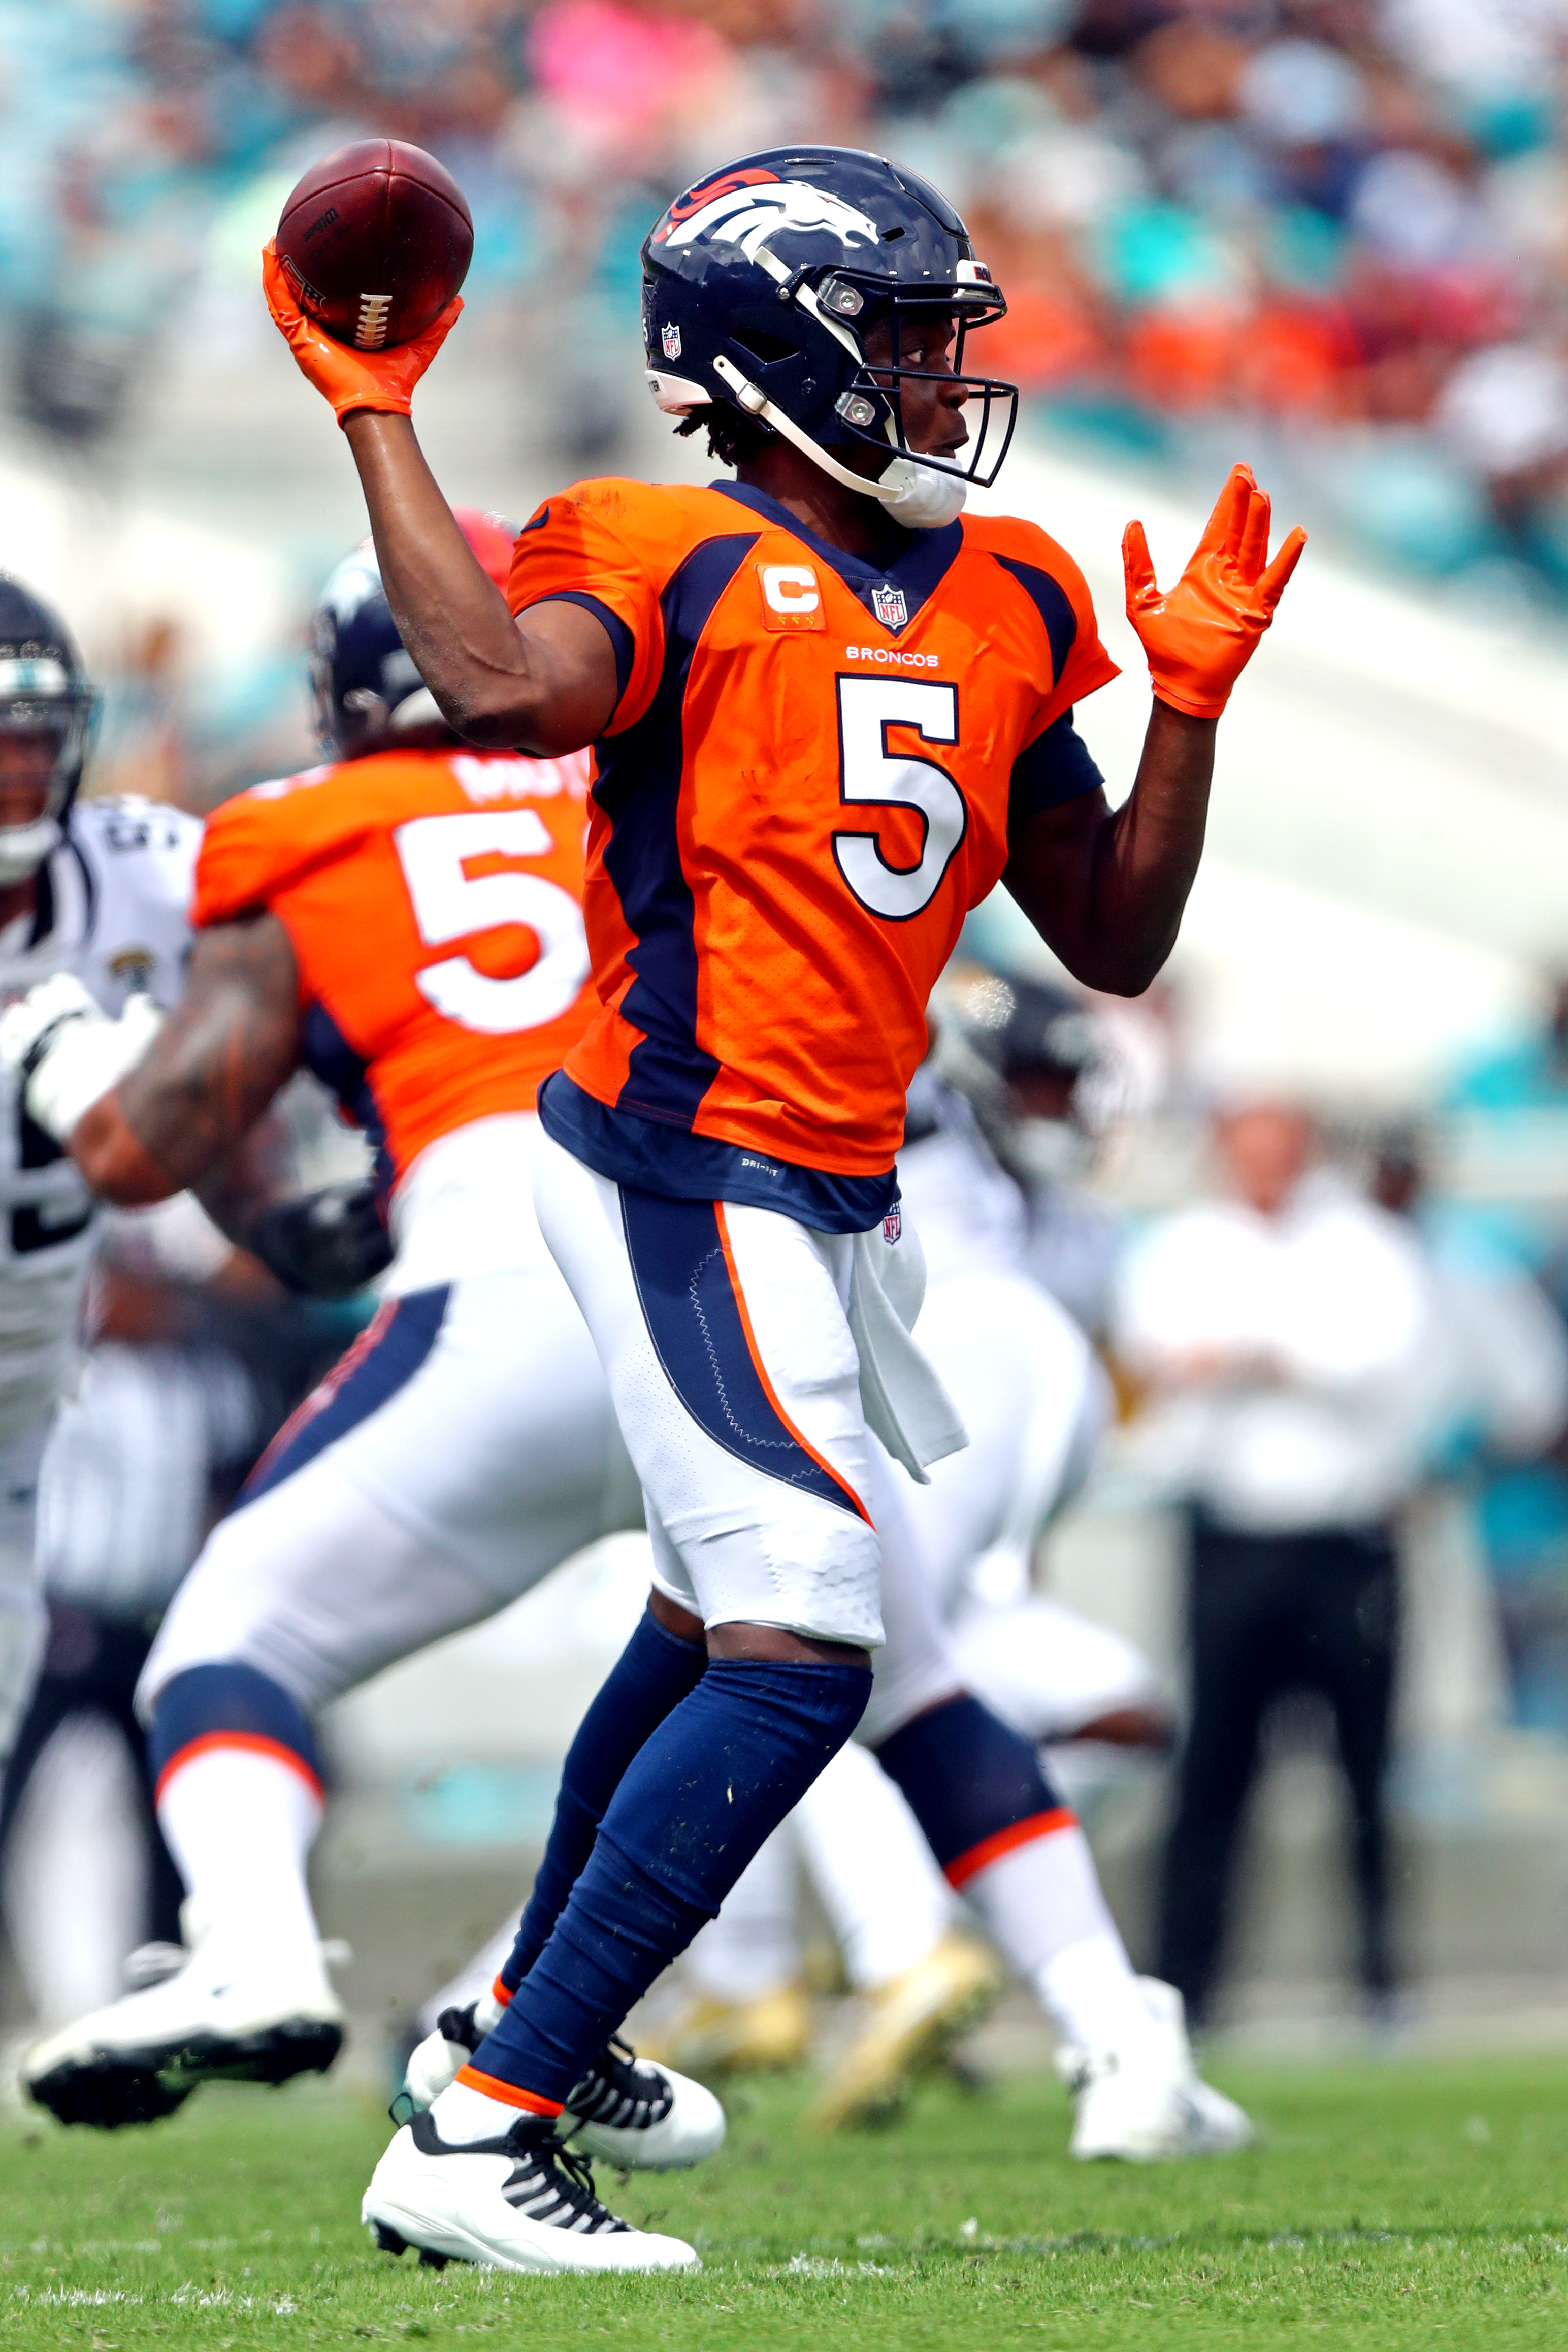 Broncos quarterback Teddy Bridgewater (5) throws a pass during the second quarter against the Jacksonville Jaguars at TIAA Bank Field.